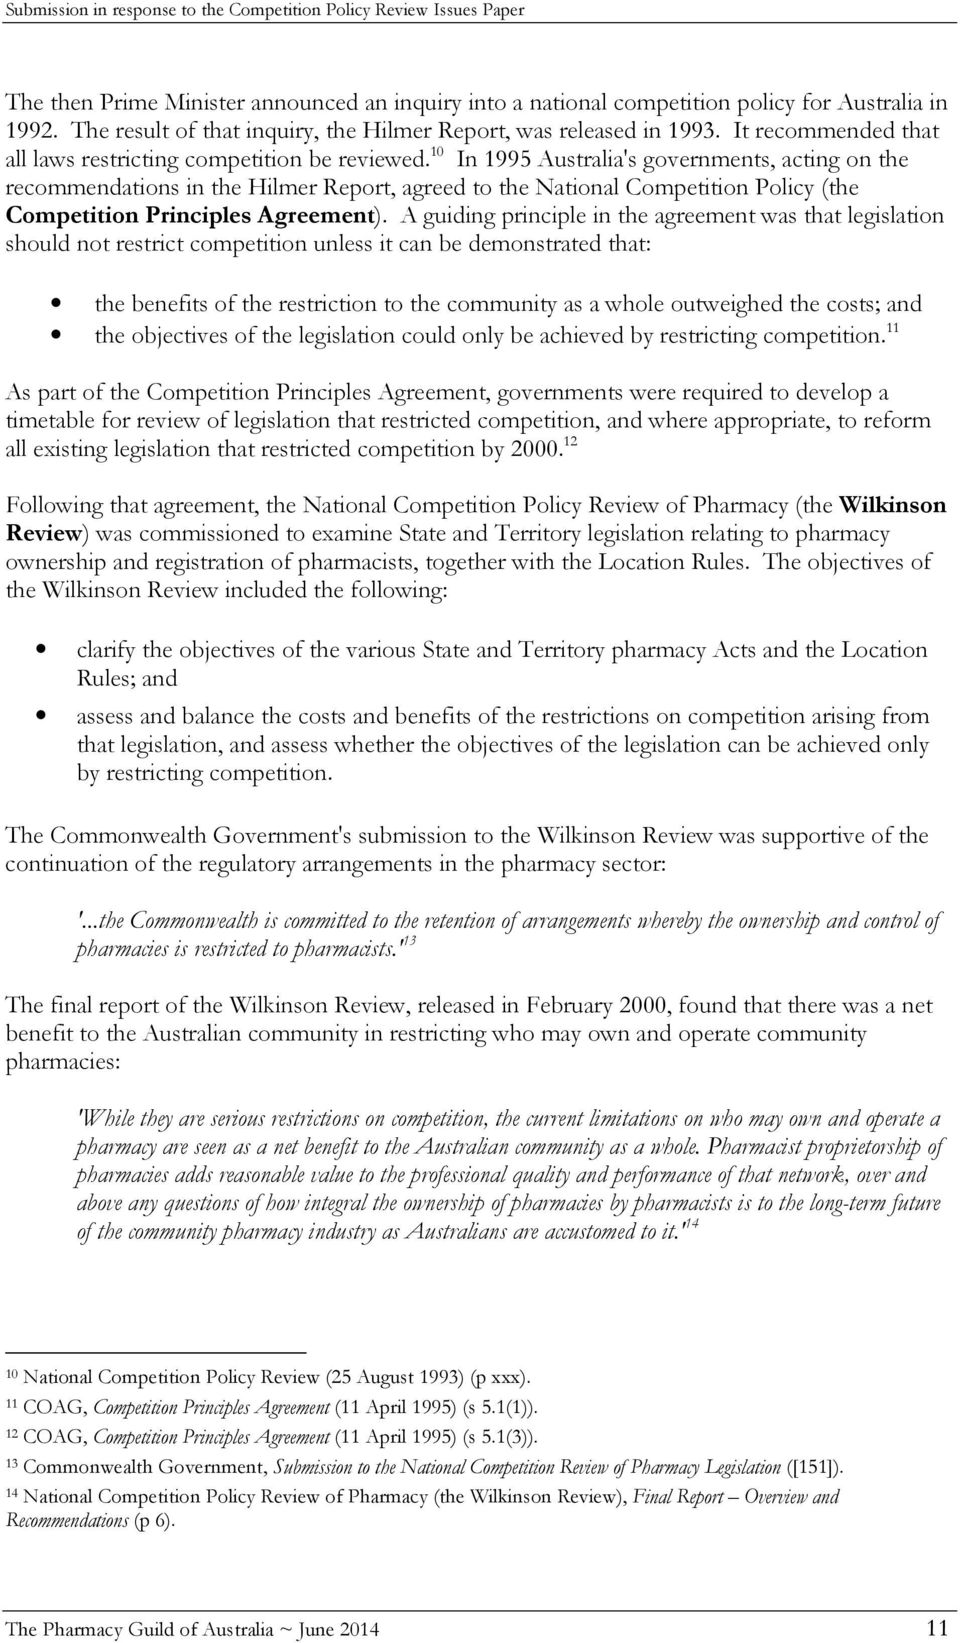 10 In 1995 Australia's governments, acting on the recommendations in the Hilmer Report, agreed to the National Competition Policy (the Competition Principles Agreement).